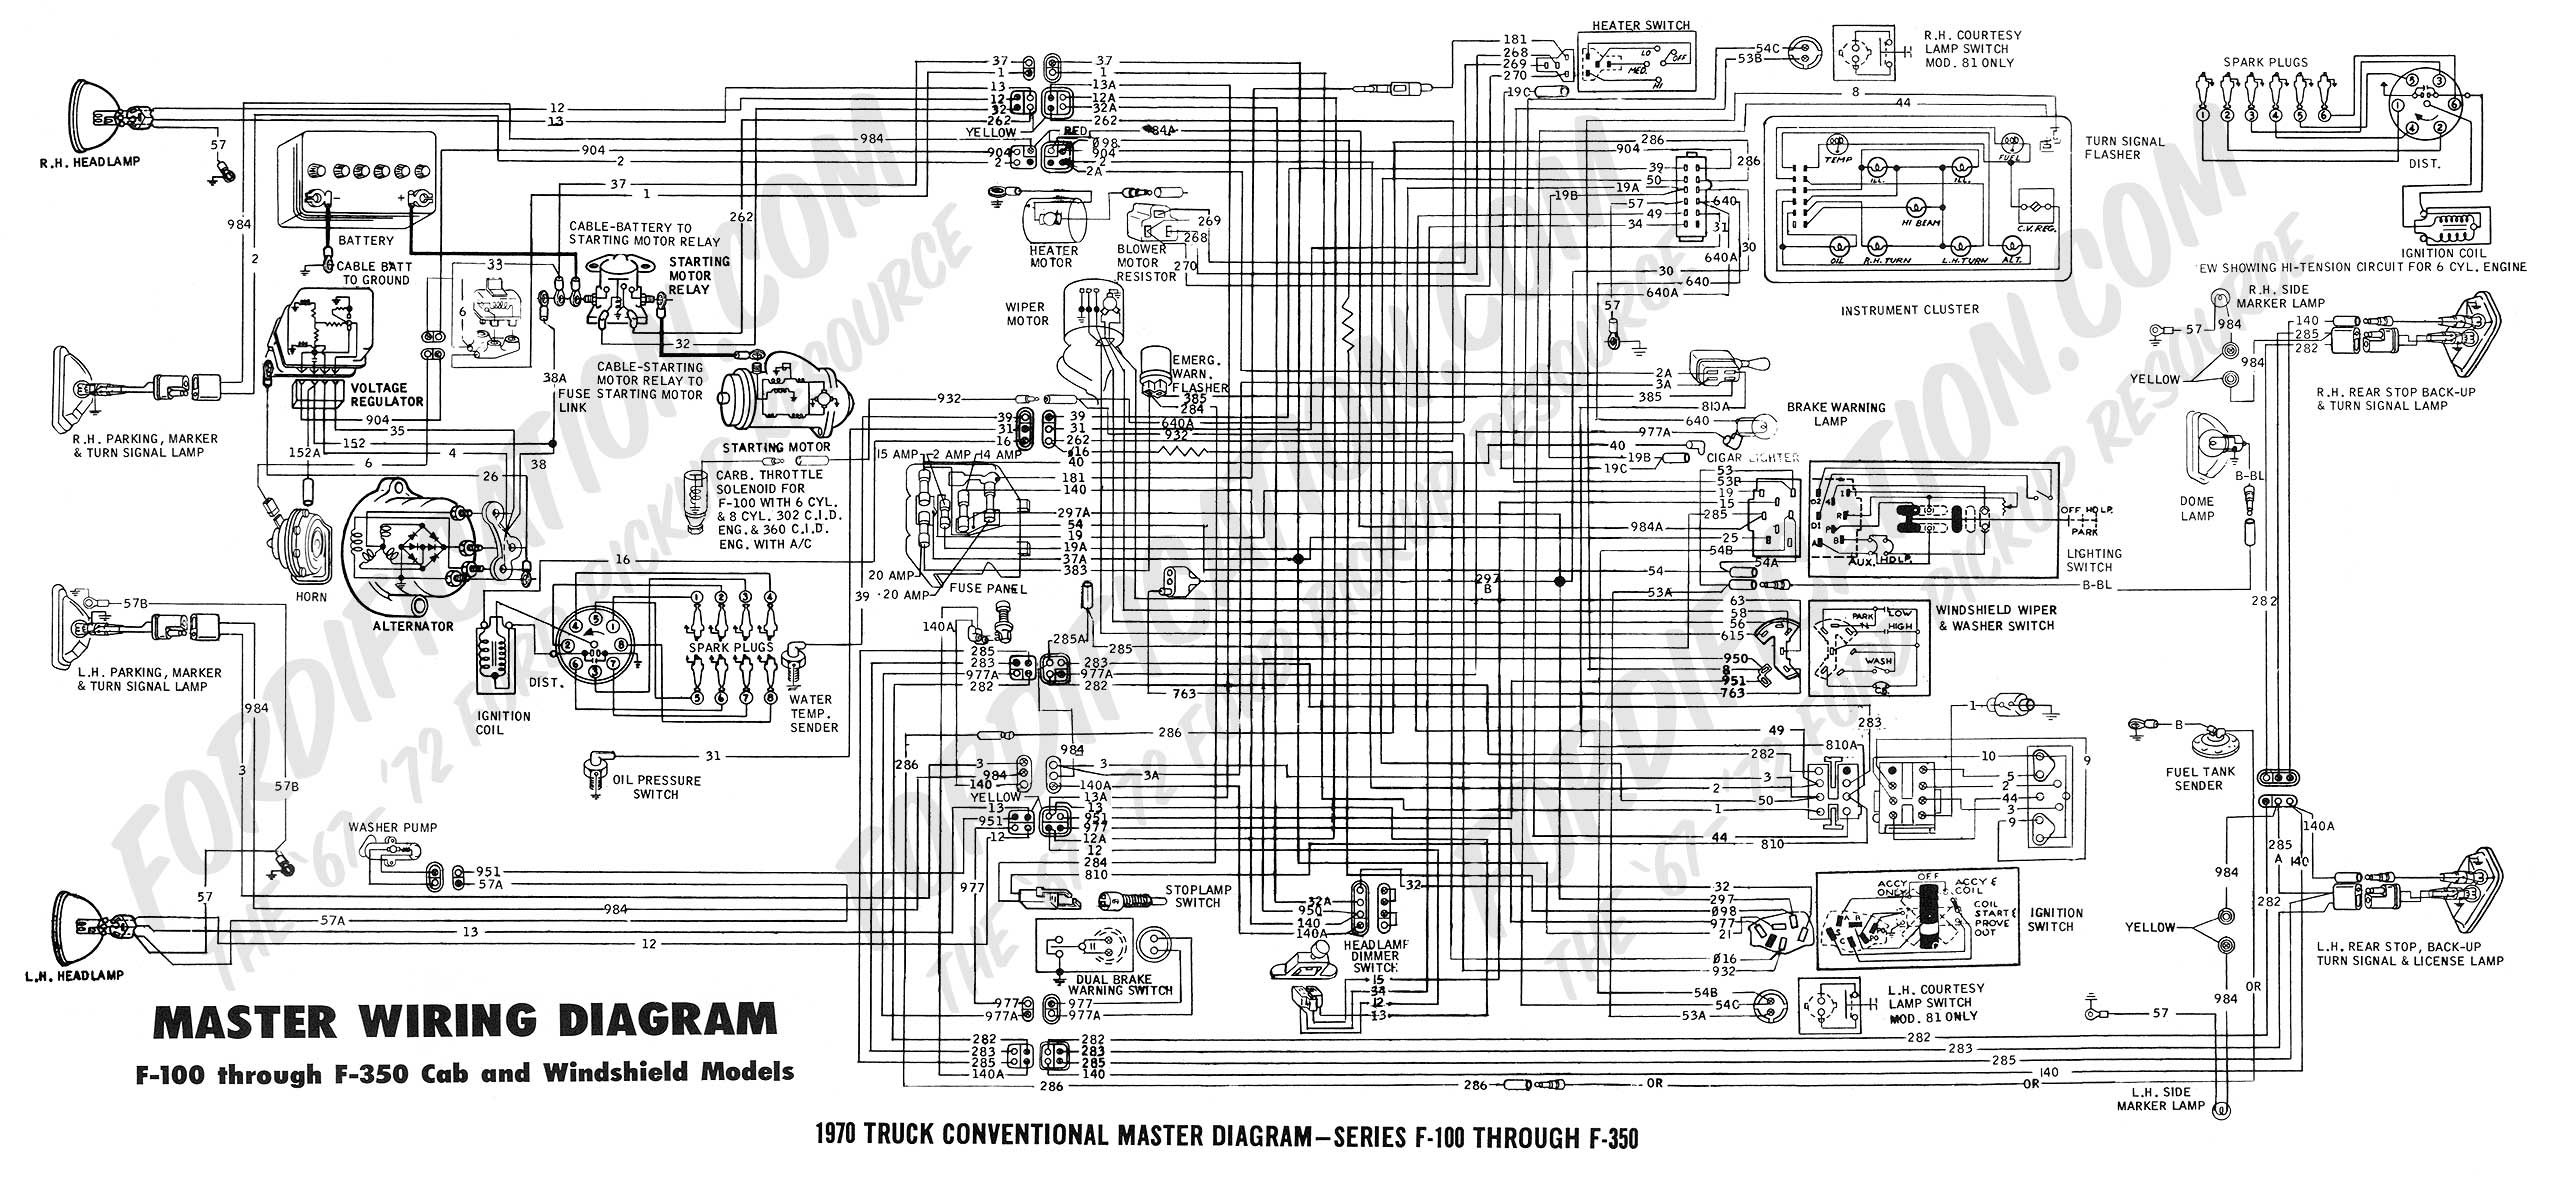 2003 Ford F 250 Wire Diagram Opinions About Wiring Diagram \u2022 1999 Ford  F -250 Wiring Diagram Ford 250 Wiring Diagram